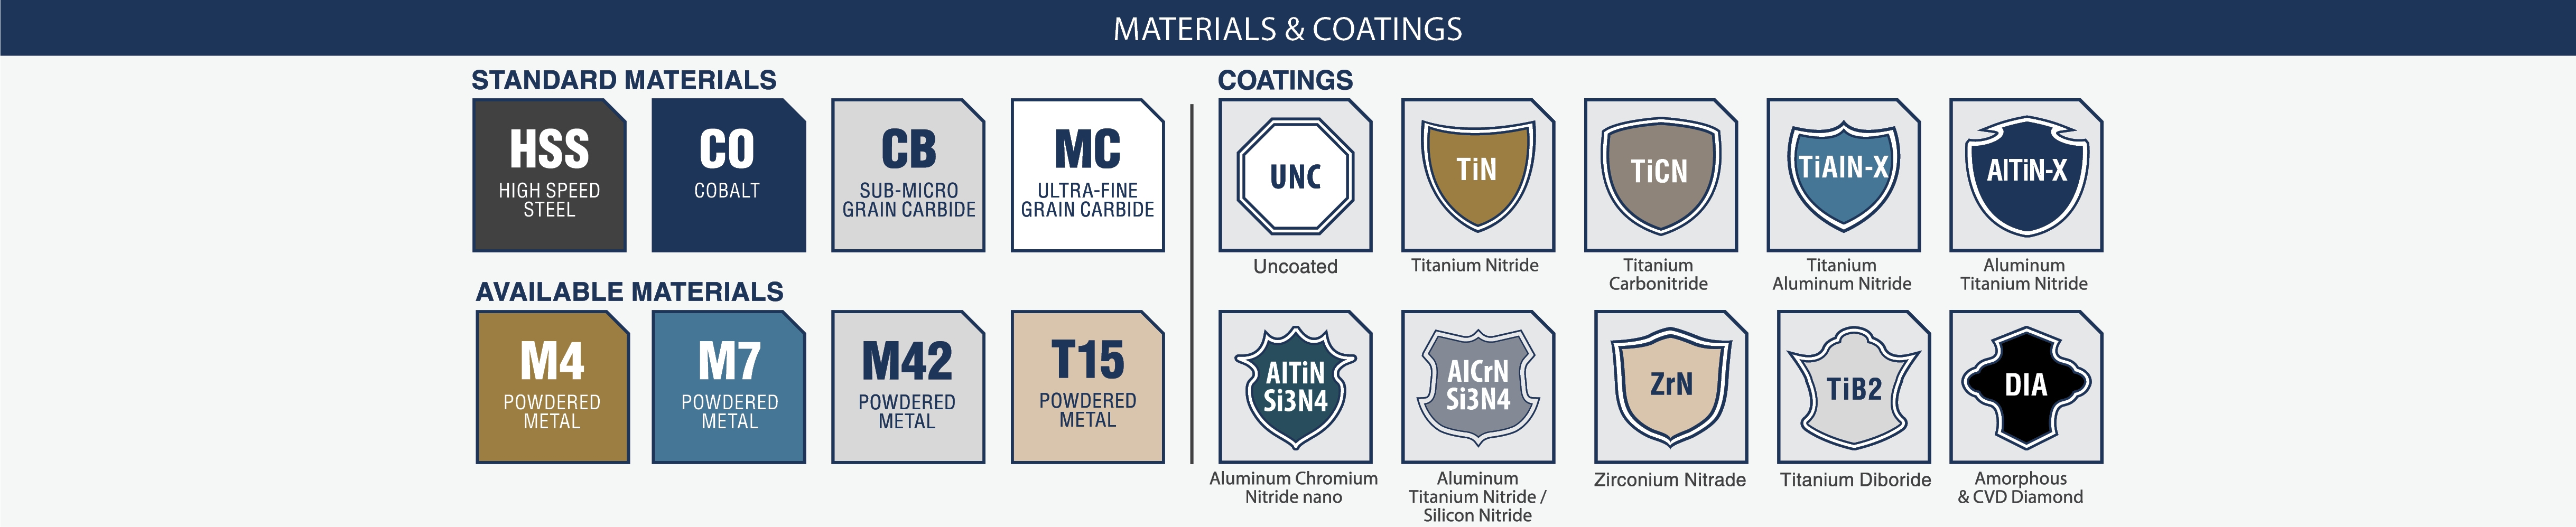 Icon Index for Materials & Coatings